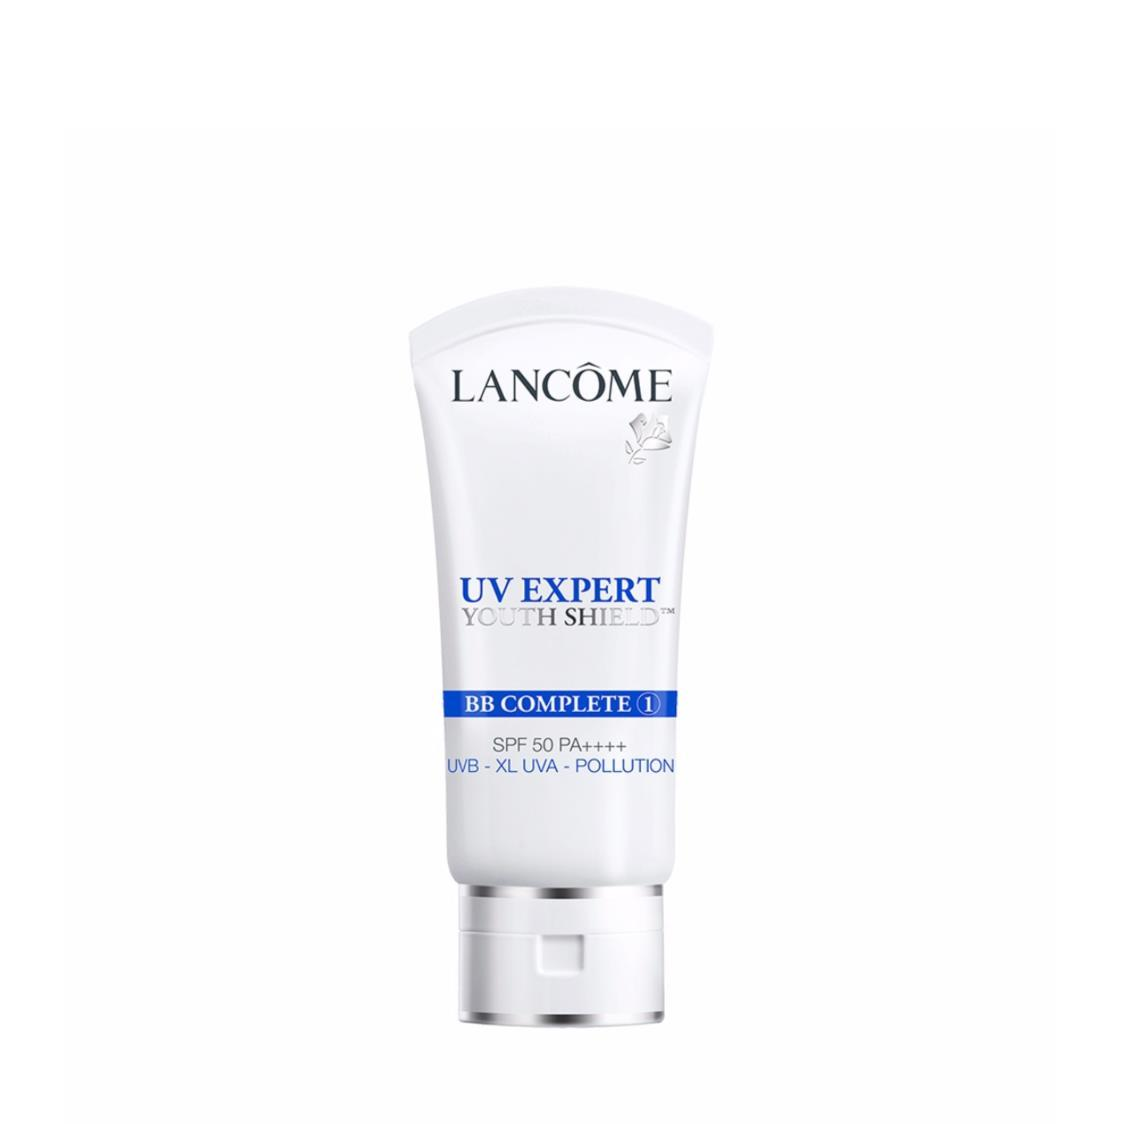 UV Expert Youth-Shield BB Complete 1 SPF 50 PA 30ml